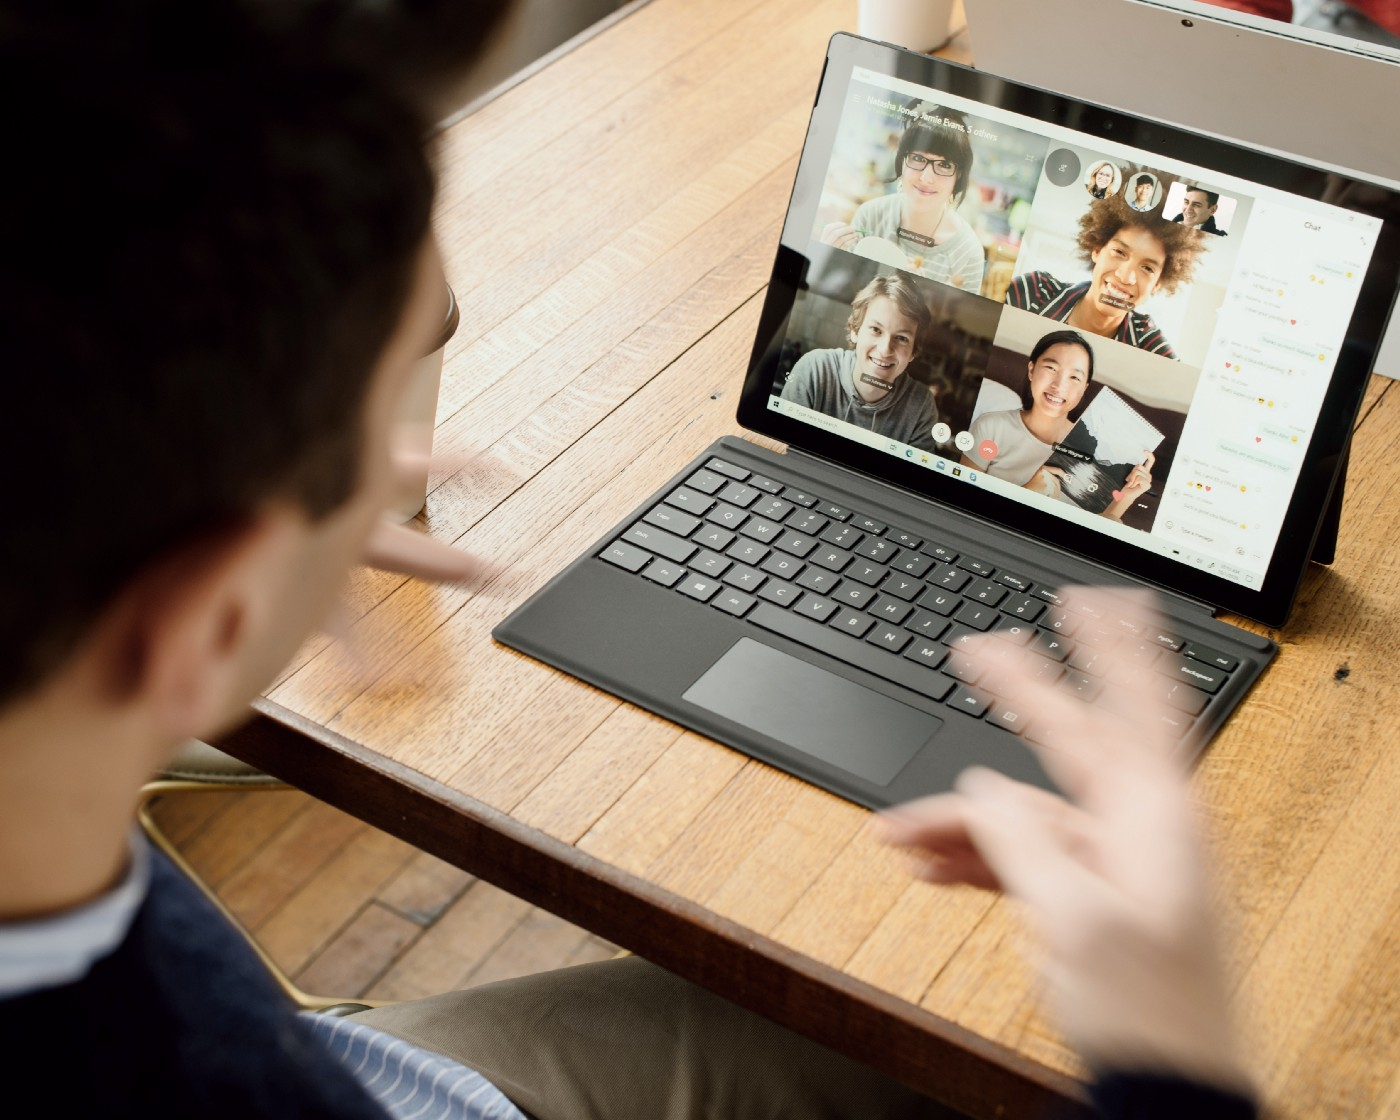 A man talks to others through his laptop on a video call.